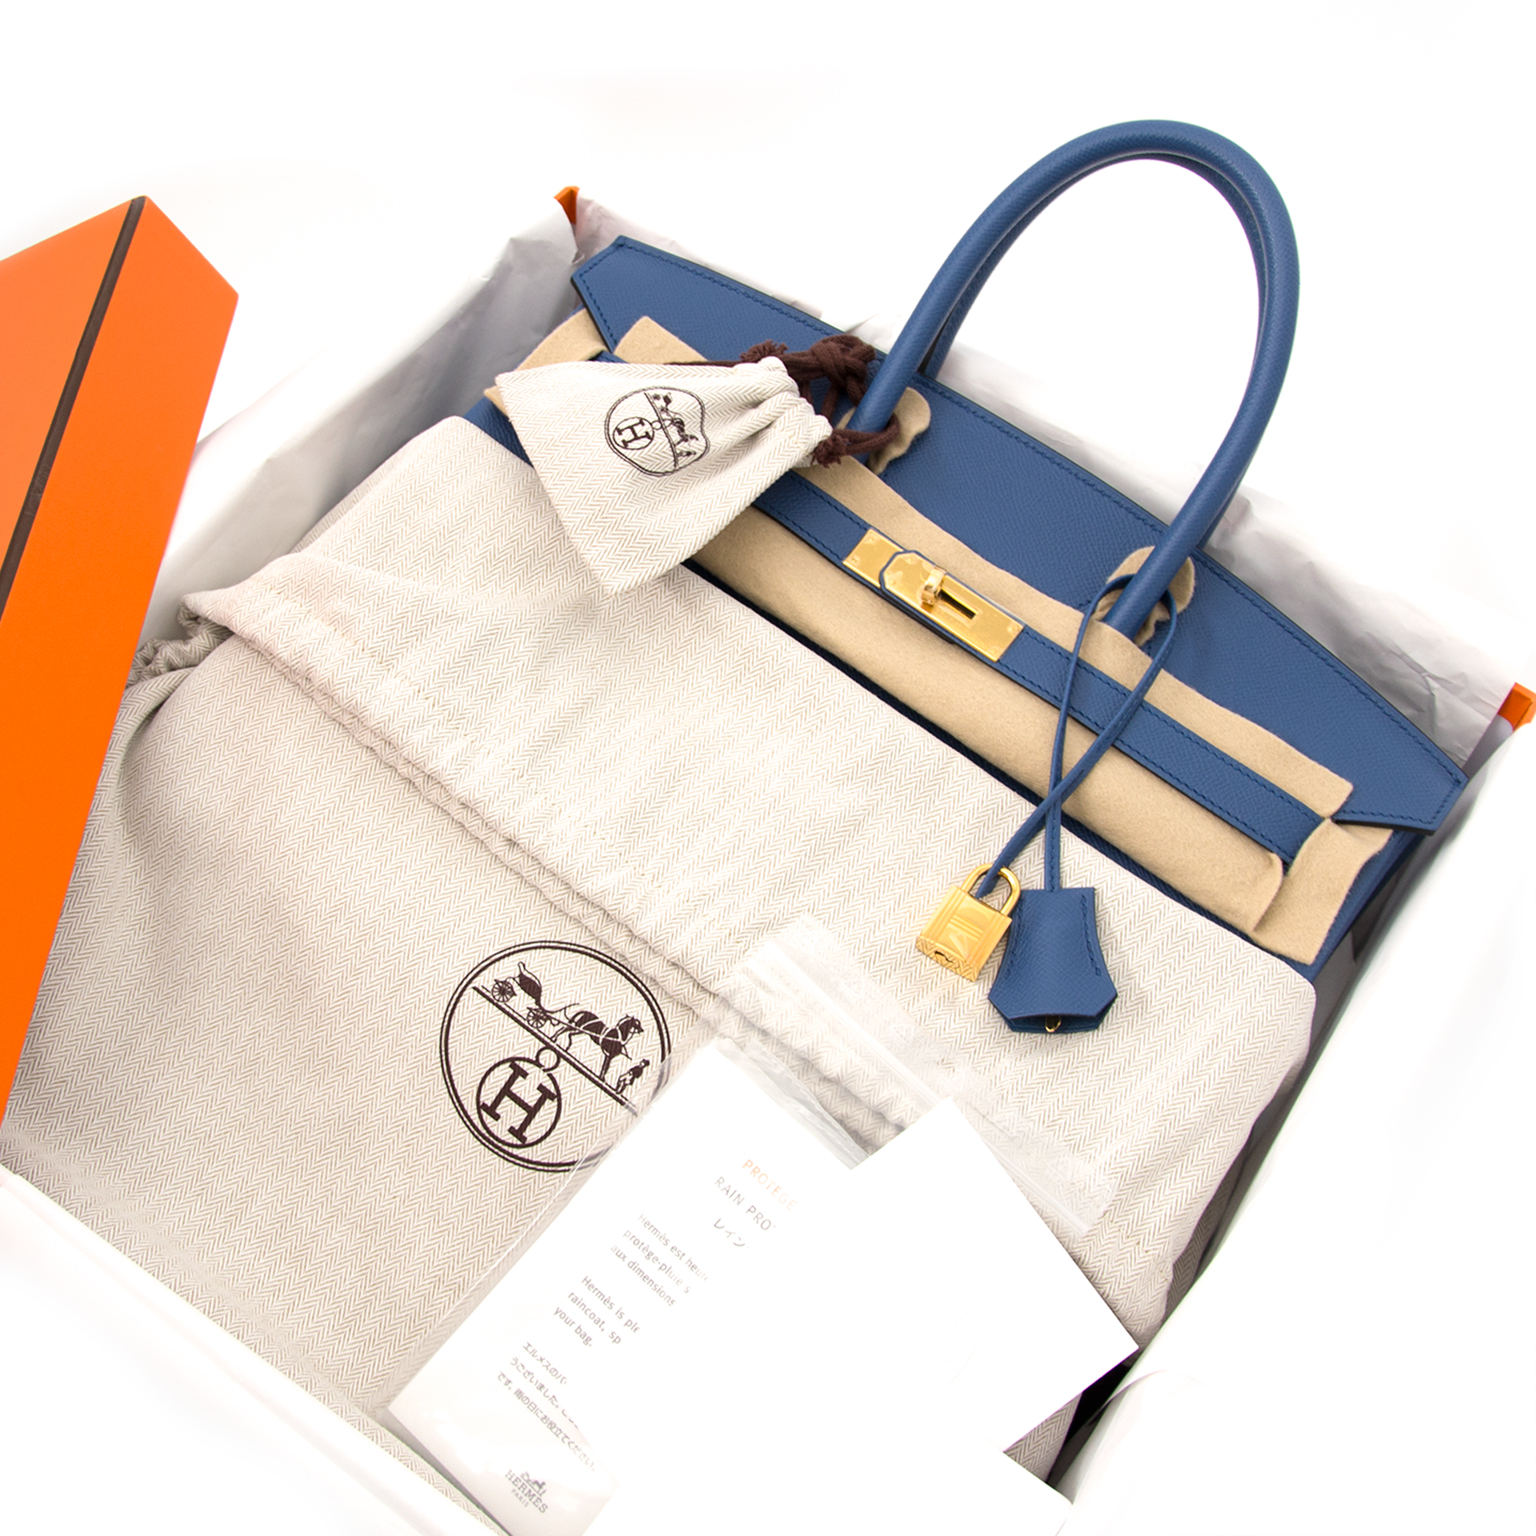 buy safe and secure online at labellov.com hermes birkin 35 bleu agathe ghw